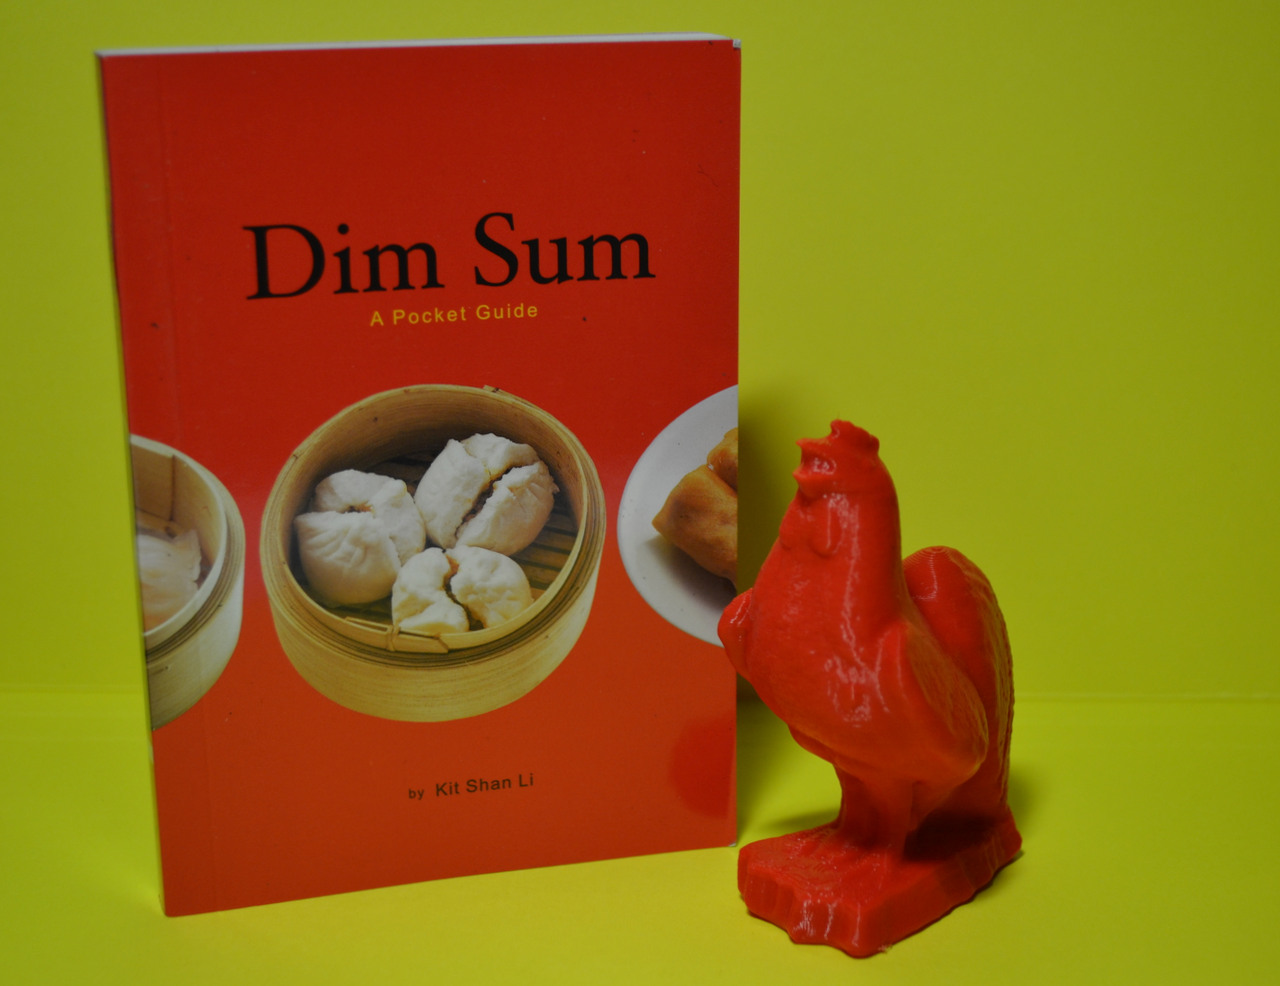 Right now we have a contest going on and you could win a free Chinatown Experience Tour (includes dim sum!) or you might win this handy pocket guide to dim sum.  All you have to do to enter is head over to the  Chinatown Tours Facebook page    Announcing a contest to NAME THAT ROOSTER.   One lucky winner will receive a Chinatown Experience Tour (value $75) and one lucky winner will receive my favorite pocket guide to dim sum.  How to enter: - Like the Boston Chinatown Tours Facebook page. - Drop a comment there, tell me: - Why you want to go on a Chinatown Tour? What are you curious about? - What do you think the rooster's name should be and why?  Tag a friend who would enjoy a Chinatown tour.  Contest will begins Monday December 18 and ends at midnight December 31.  We'll announce the winners there.